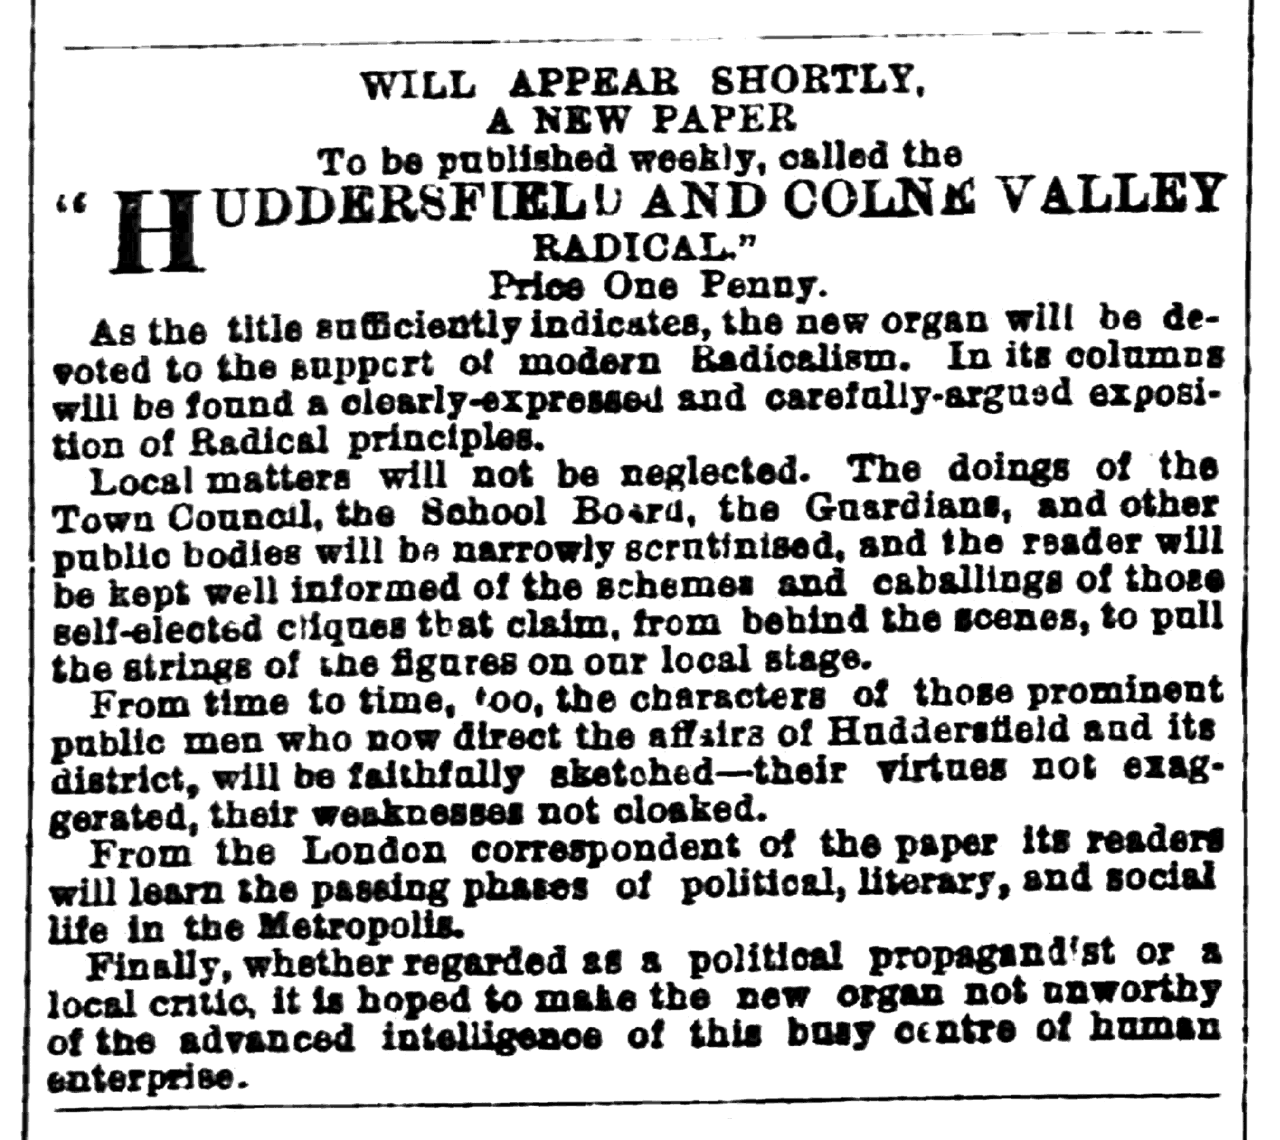 Huddersfield Chronicle 09 Jul 1881 - Public Notices, Huddersfield and Colne Valley Radical.png